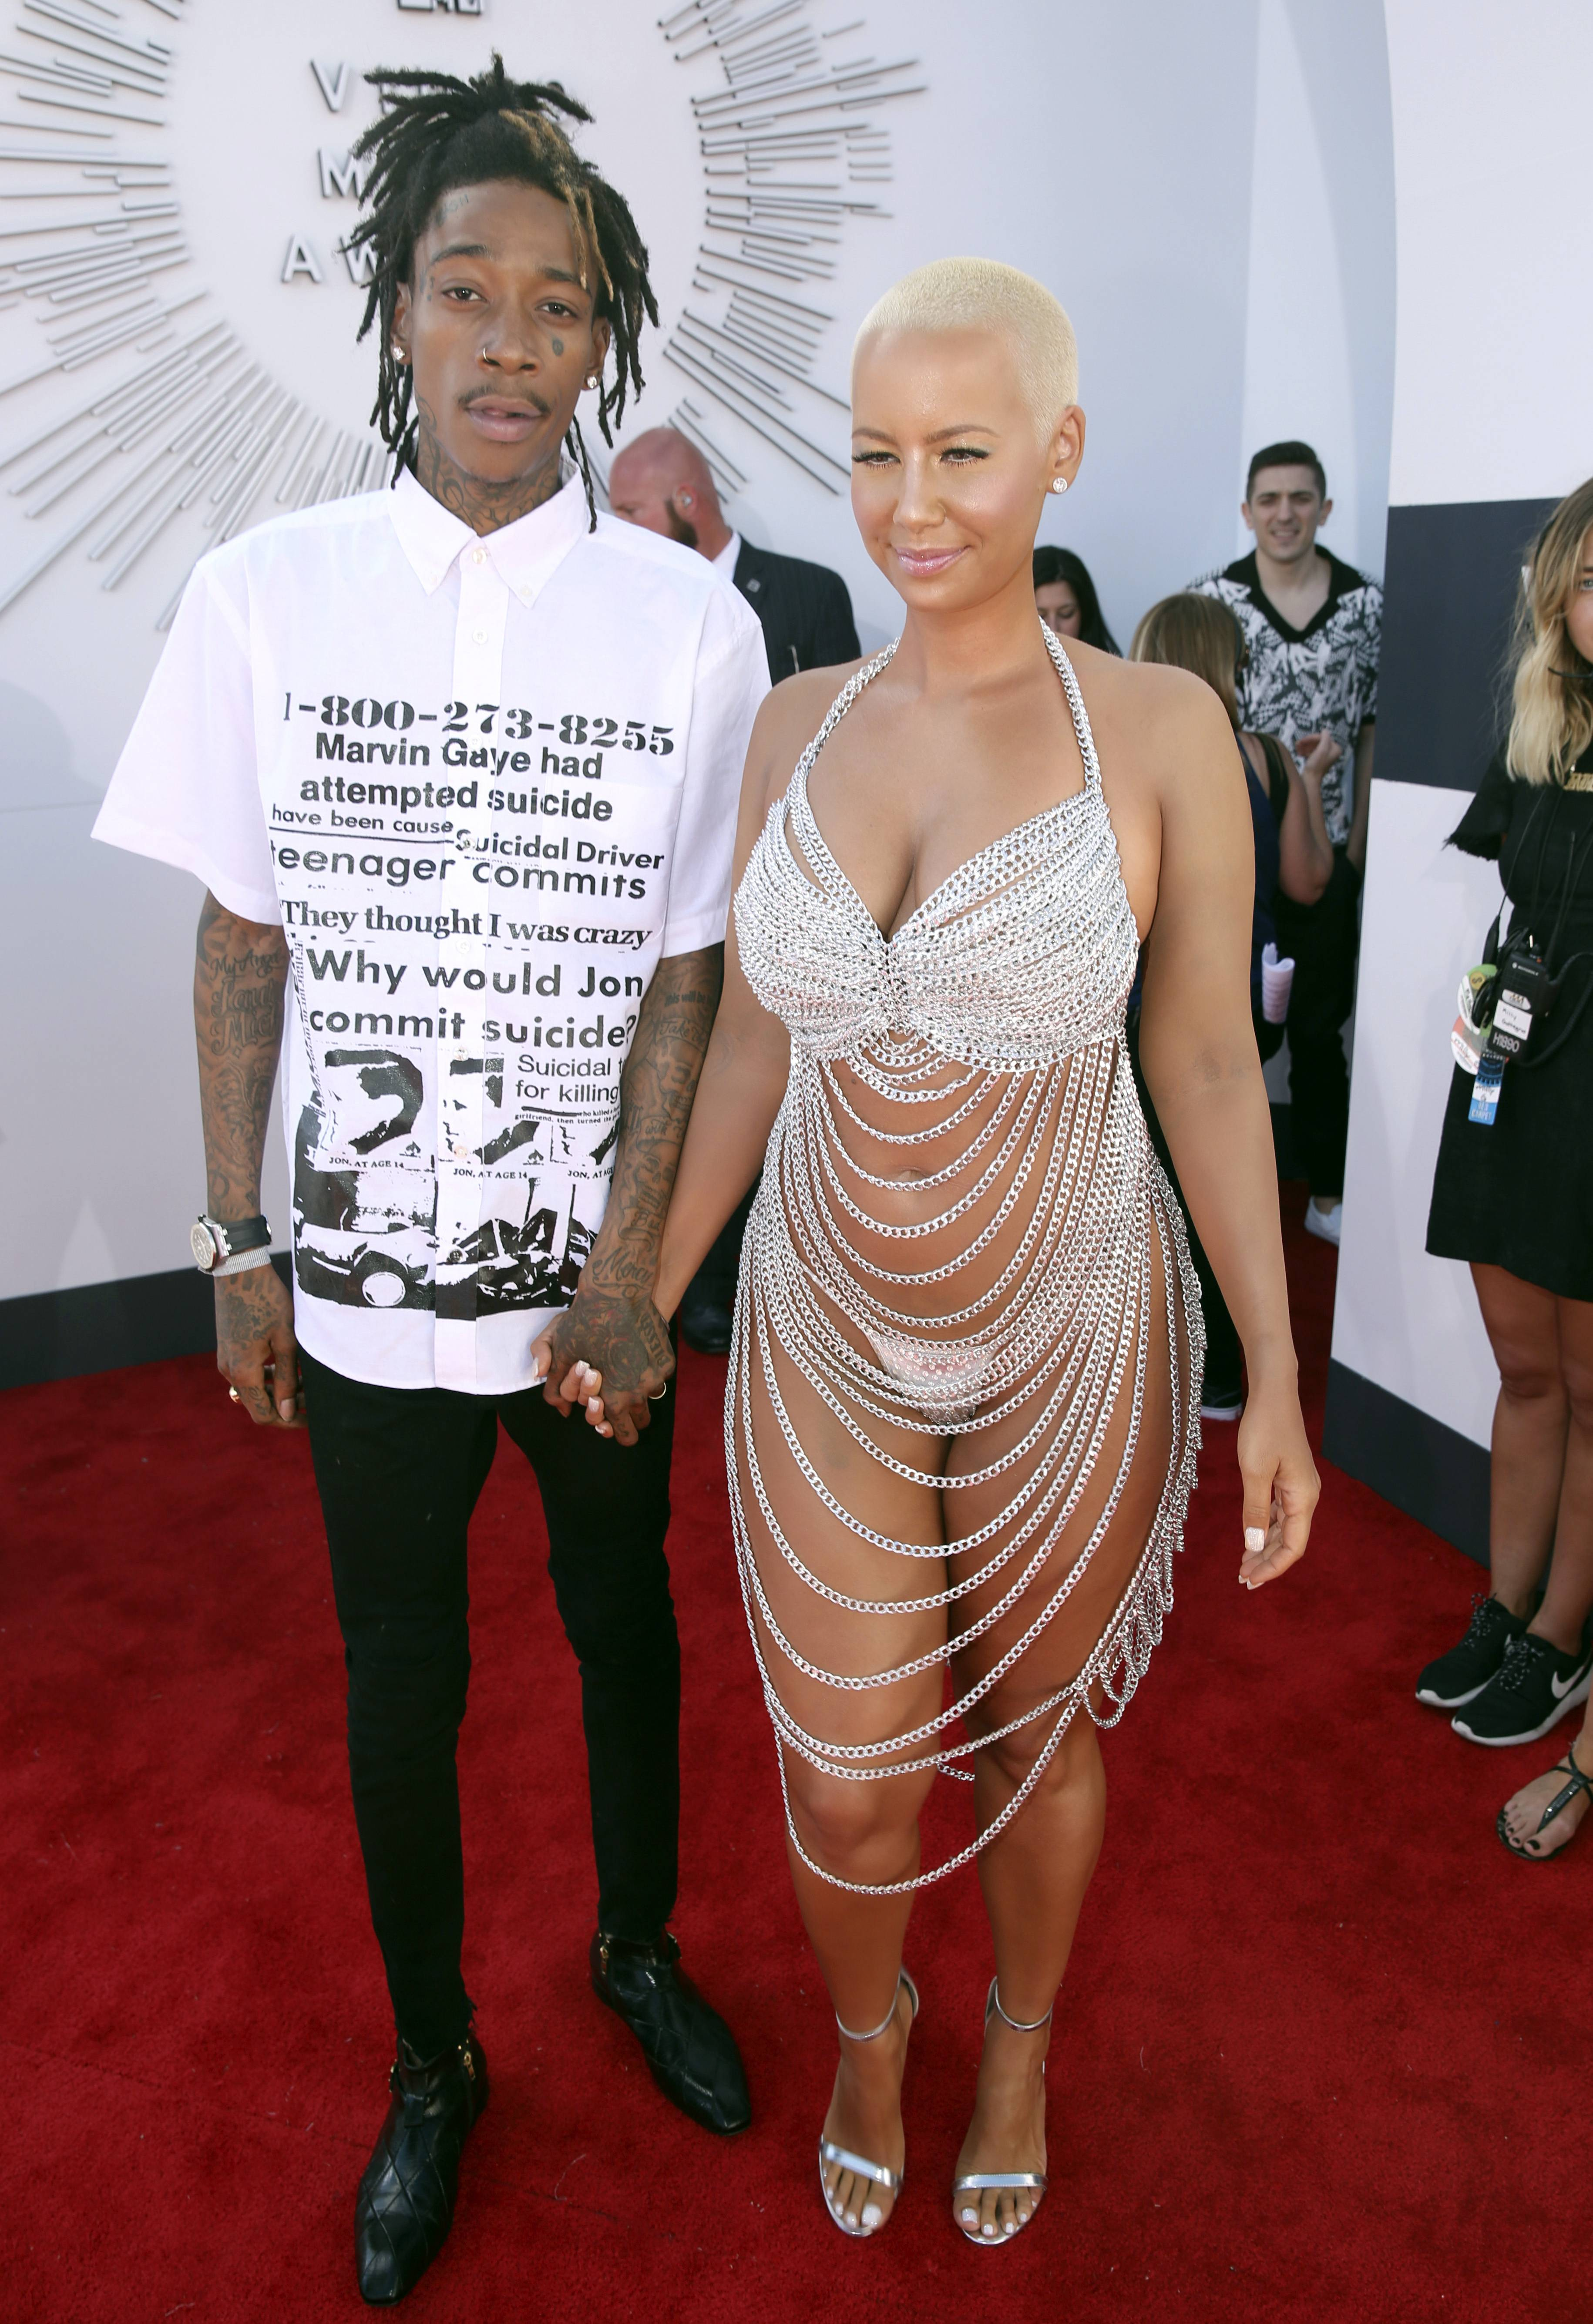 Wiz Khalifa and Amber Rose arrive at the MTV Video Music Awards at The Forum on Sunday in Inglewood, Calif.